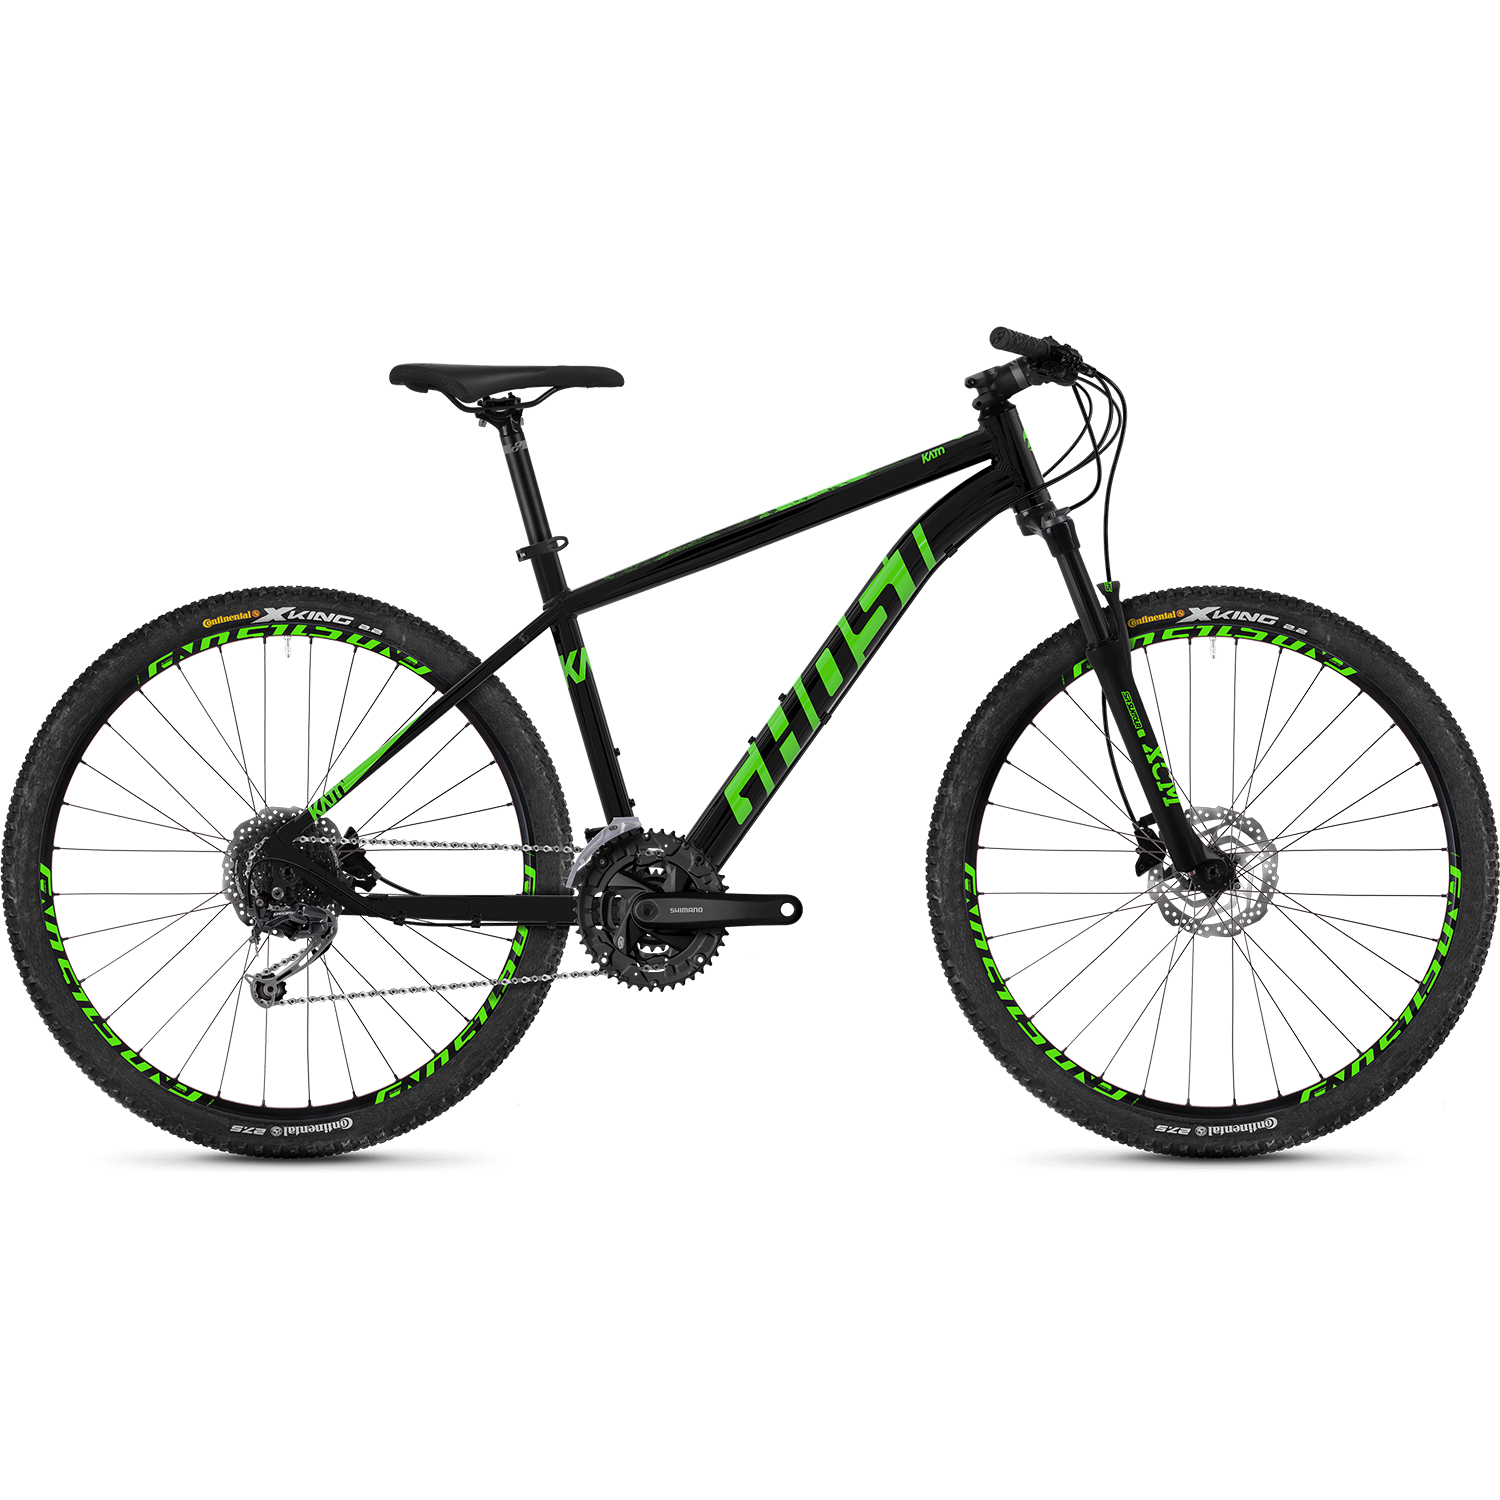 ghost kato 4 7 al u 27 5 zoll mountainbike hardtail mtb. Black Bedroom Furniture Sets. Home Design Ideas